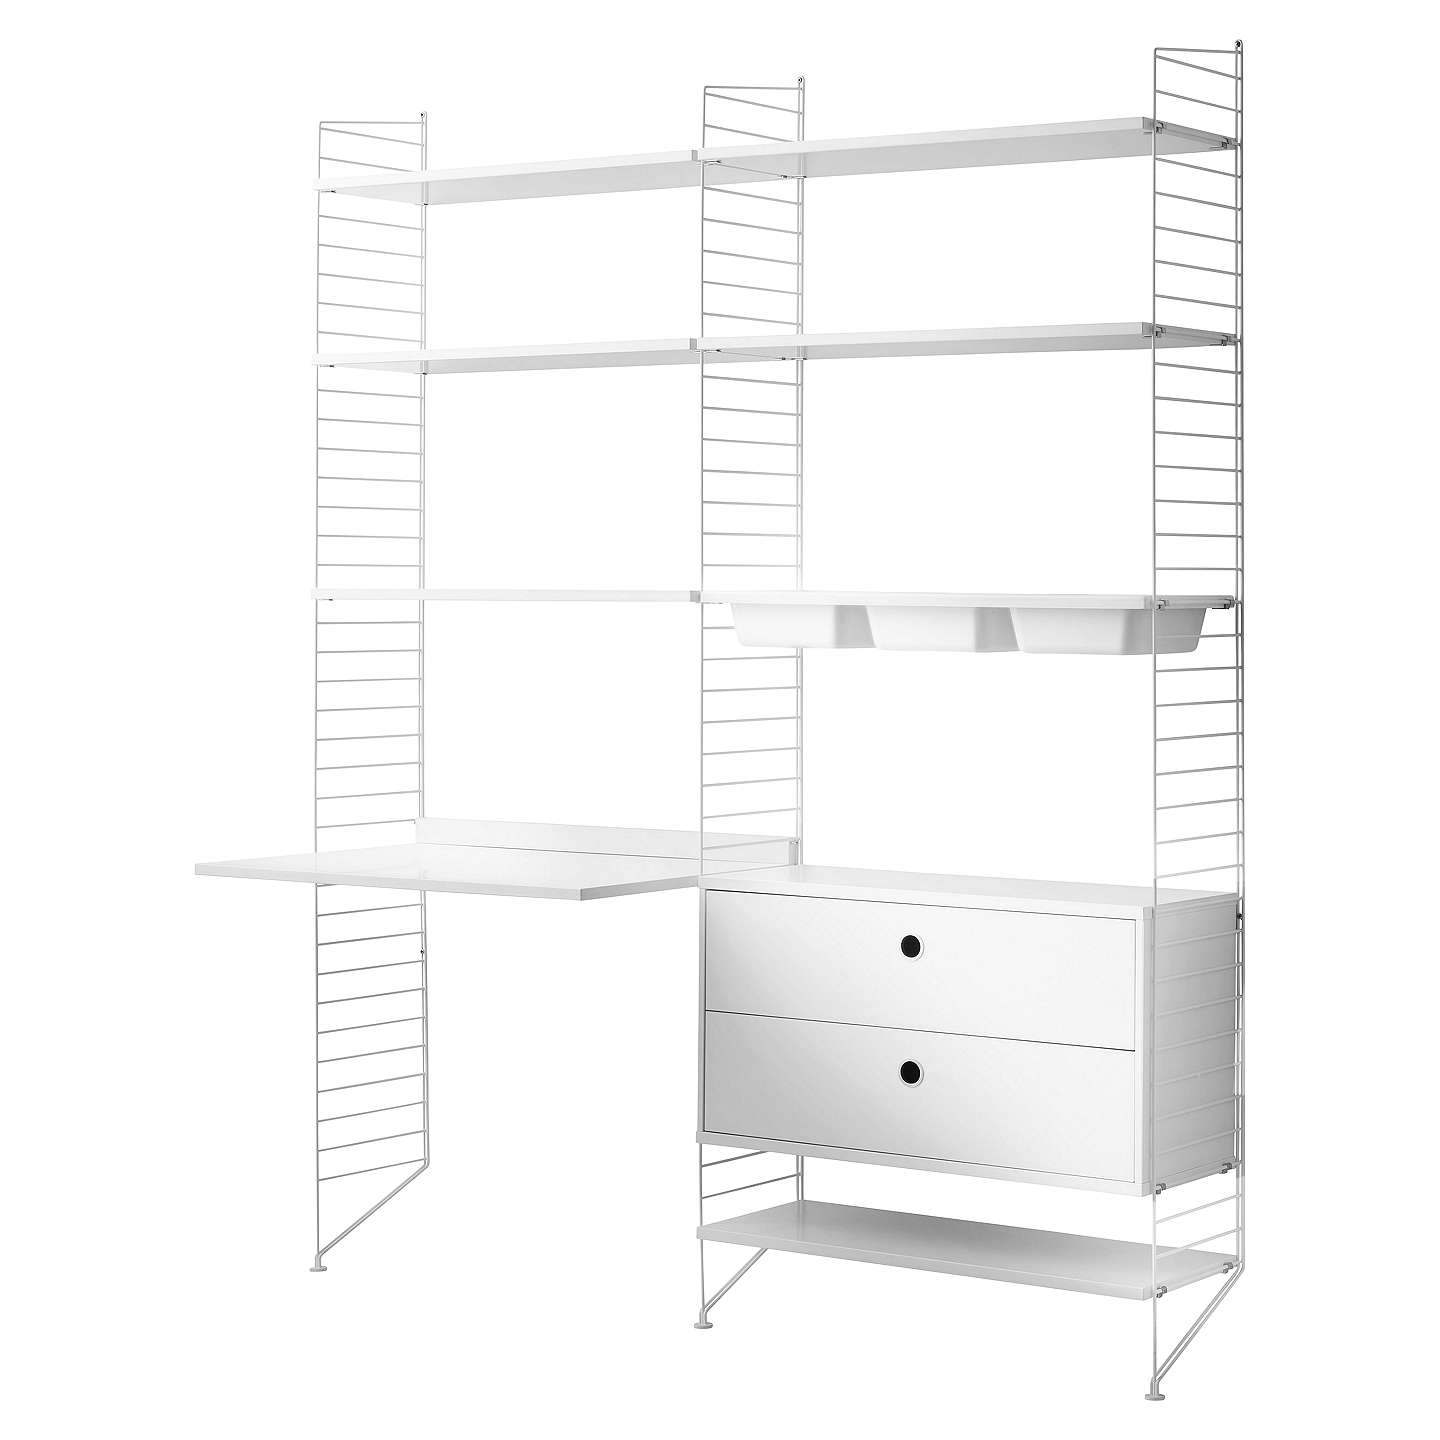 string Shelving Unit with Work Desk Shelves 2 Drawer Chest 3 Bowl